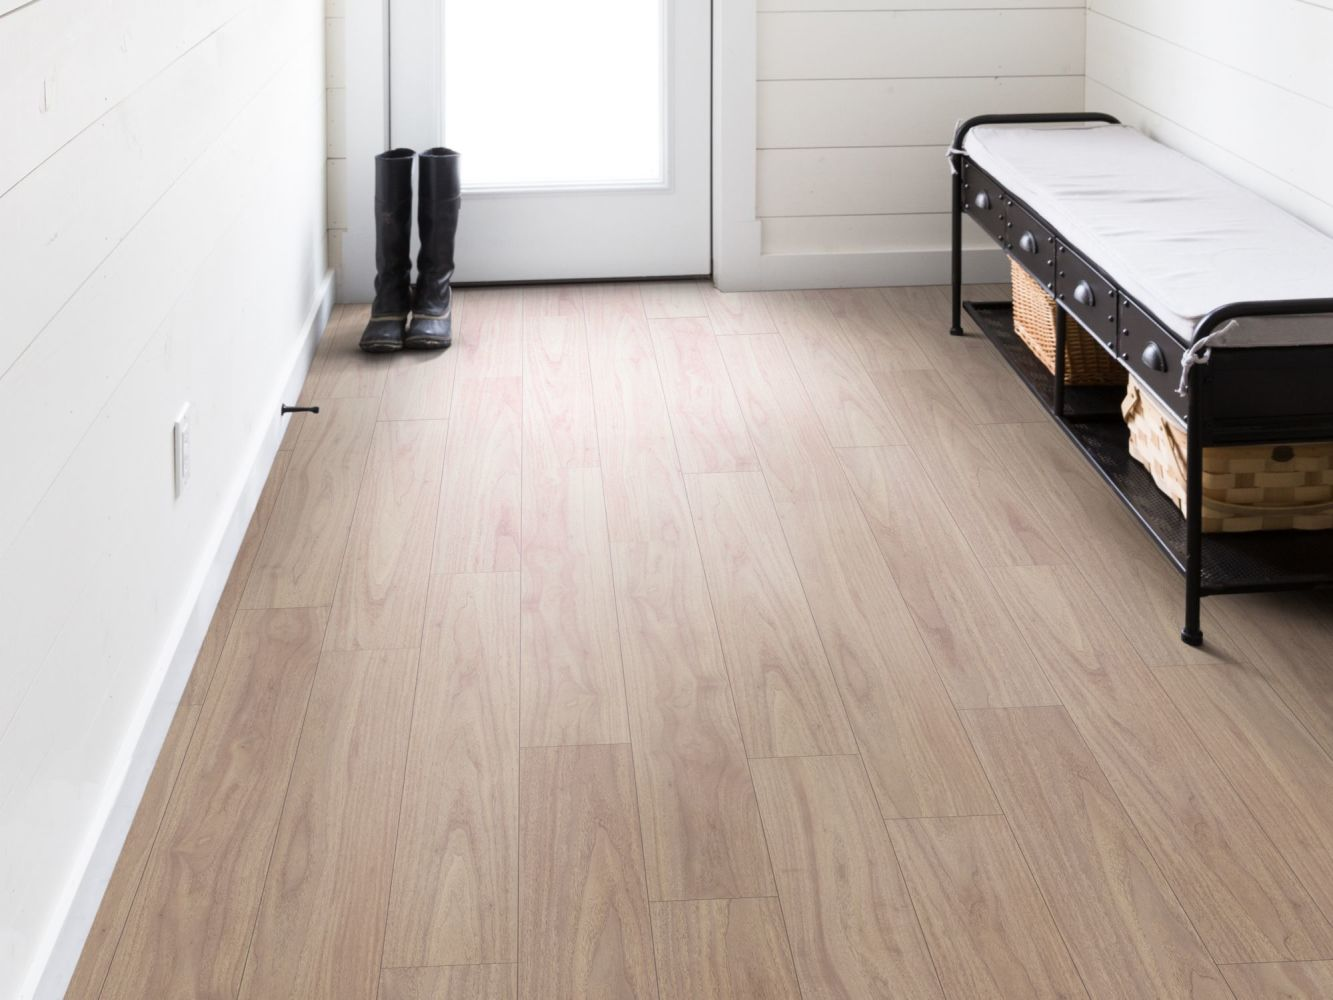 Shaw Floors Resilient Residential Distinction Plus Blonde Walnut 01091_2045V